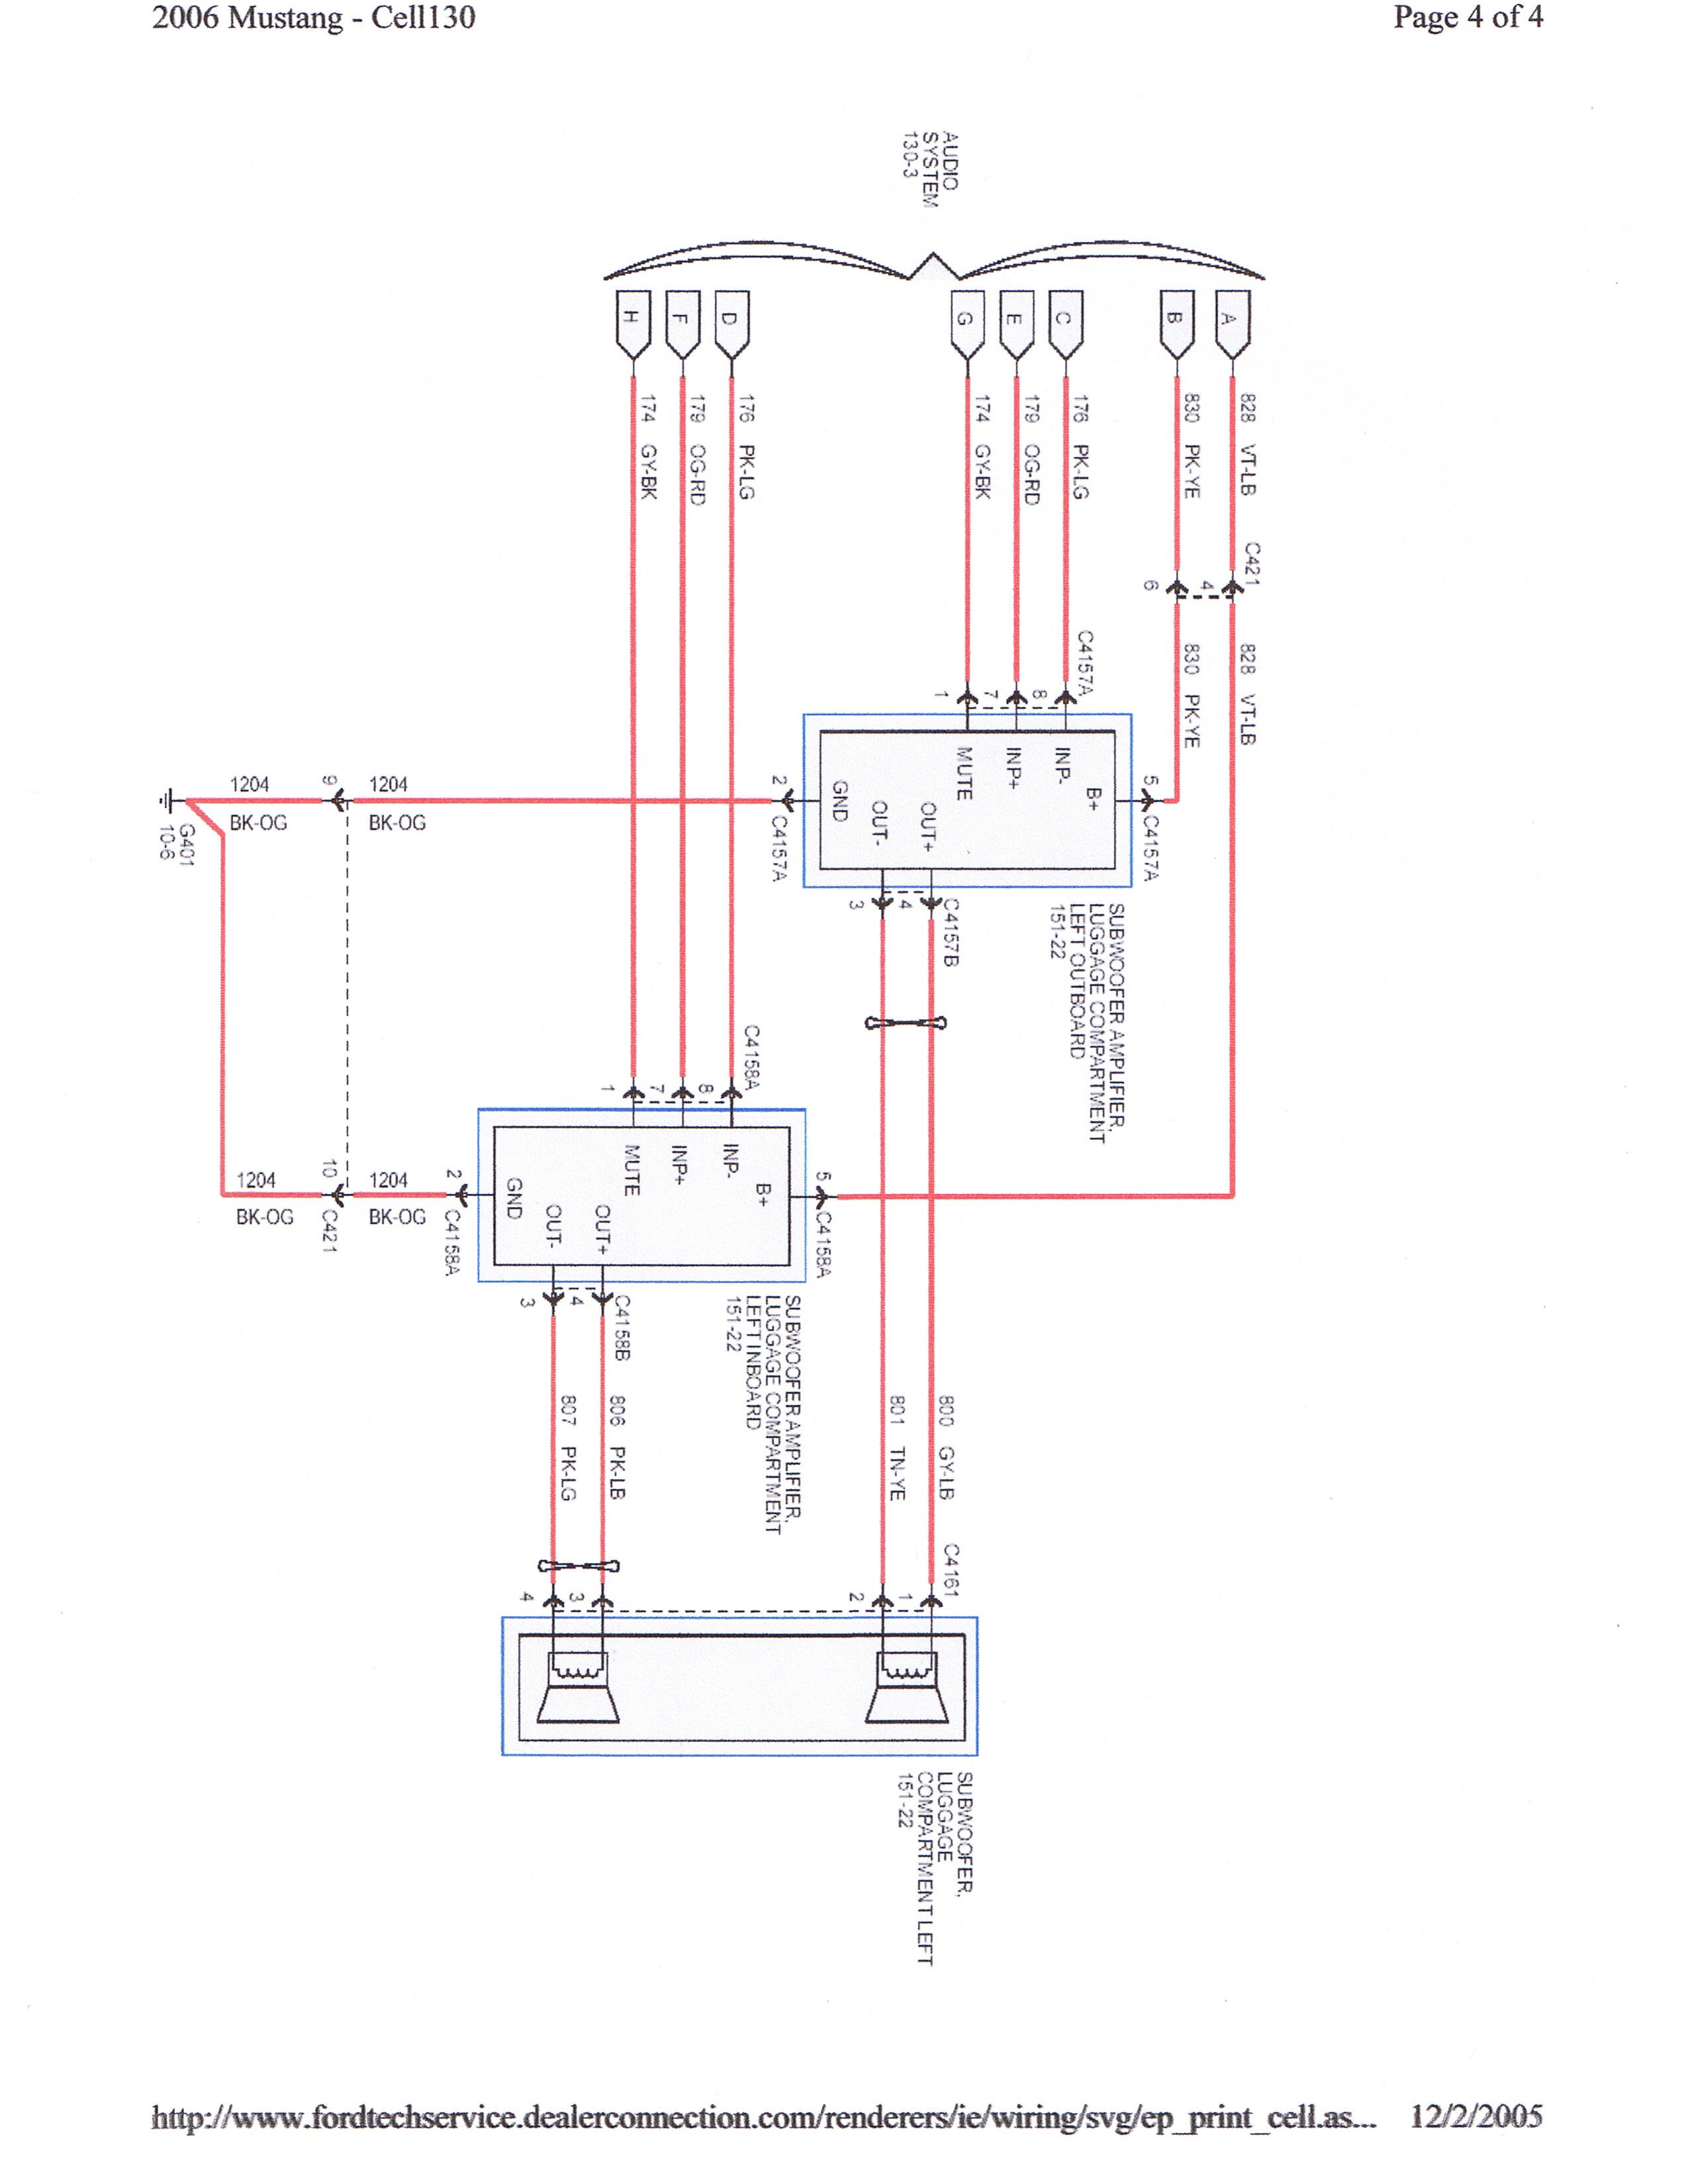 VK_7663] Mustang Shaker 500 Wiring Diagram Wiring Harness Wiring Diagram  Download DiagramRious Etic Alypt Bocep Hete Rous Oxyt Unec Wned Inrebe Mohammedshrine  Librar Wiring 101